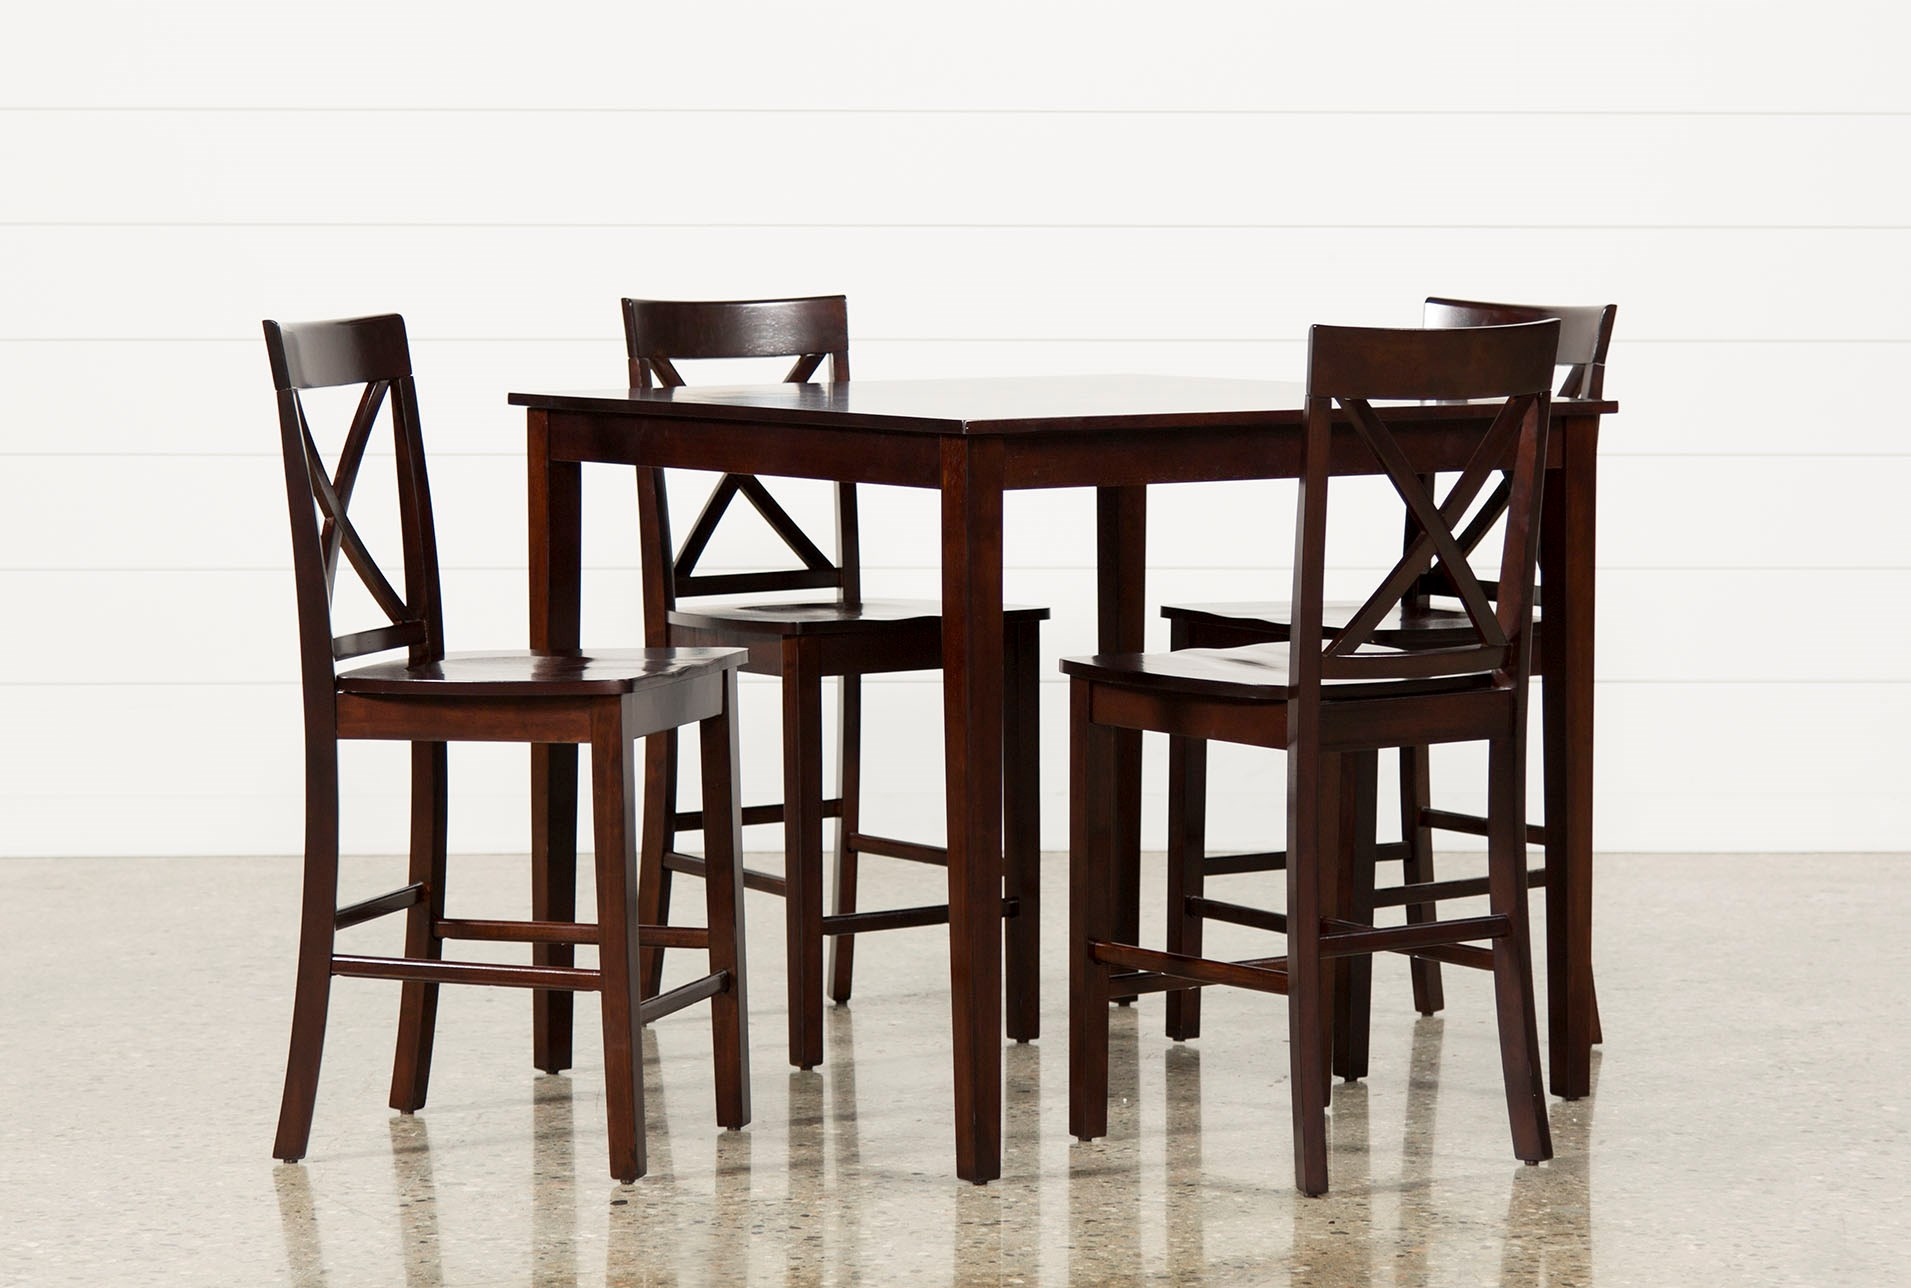 Marvelous Counter Height Dining Sets For Your Dining Room Living Spaces Home Interior And Landscaping Ologienasavecom